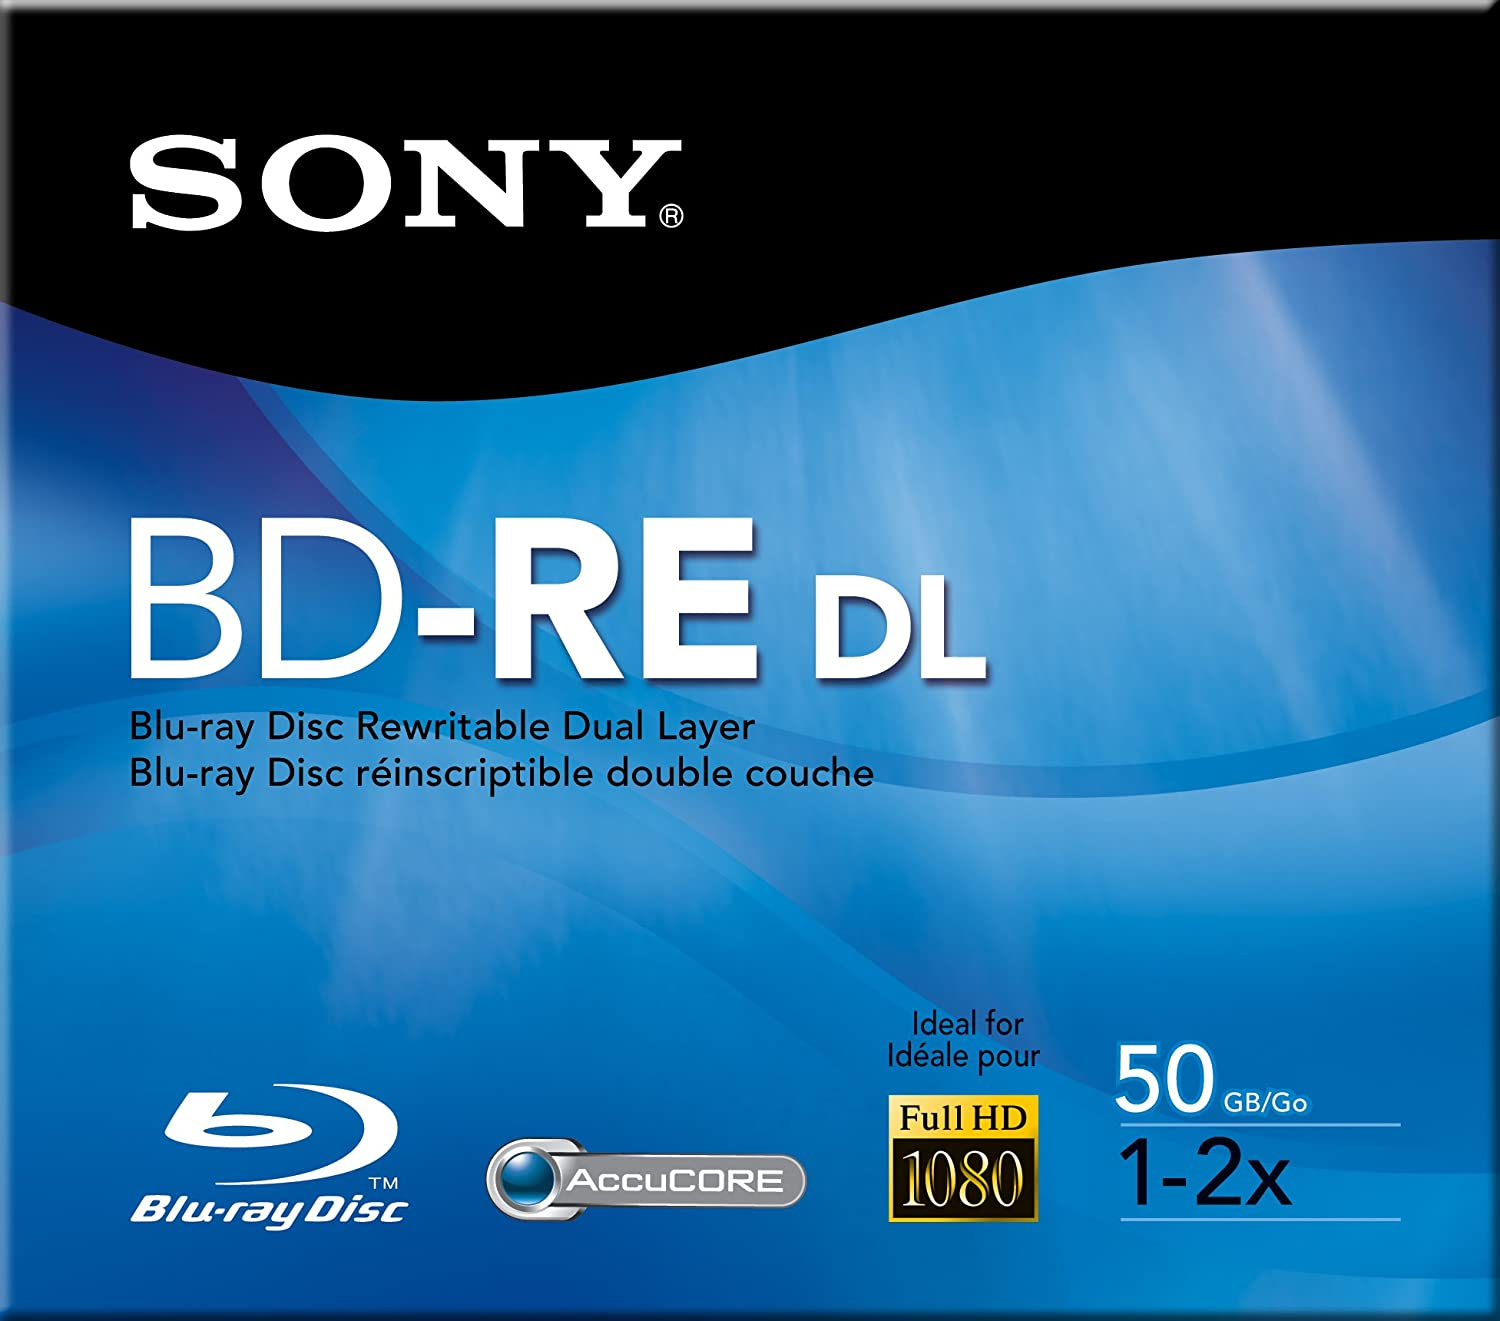 Sony Recordable Dual Layer Disc, 50gb, 2X BNE50RH